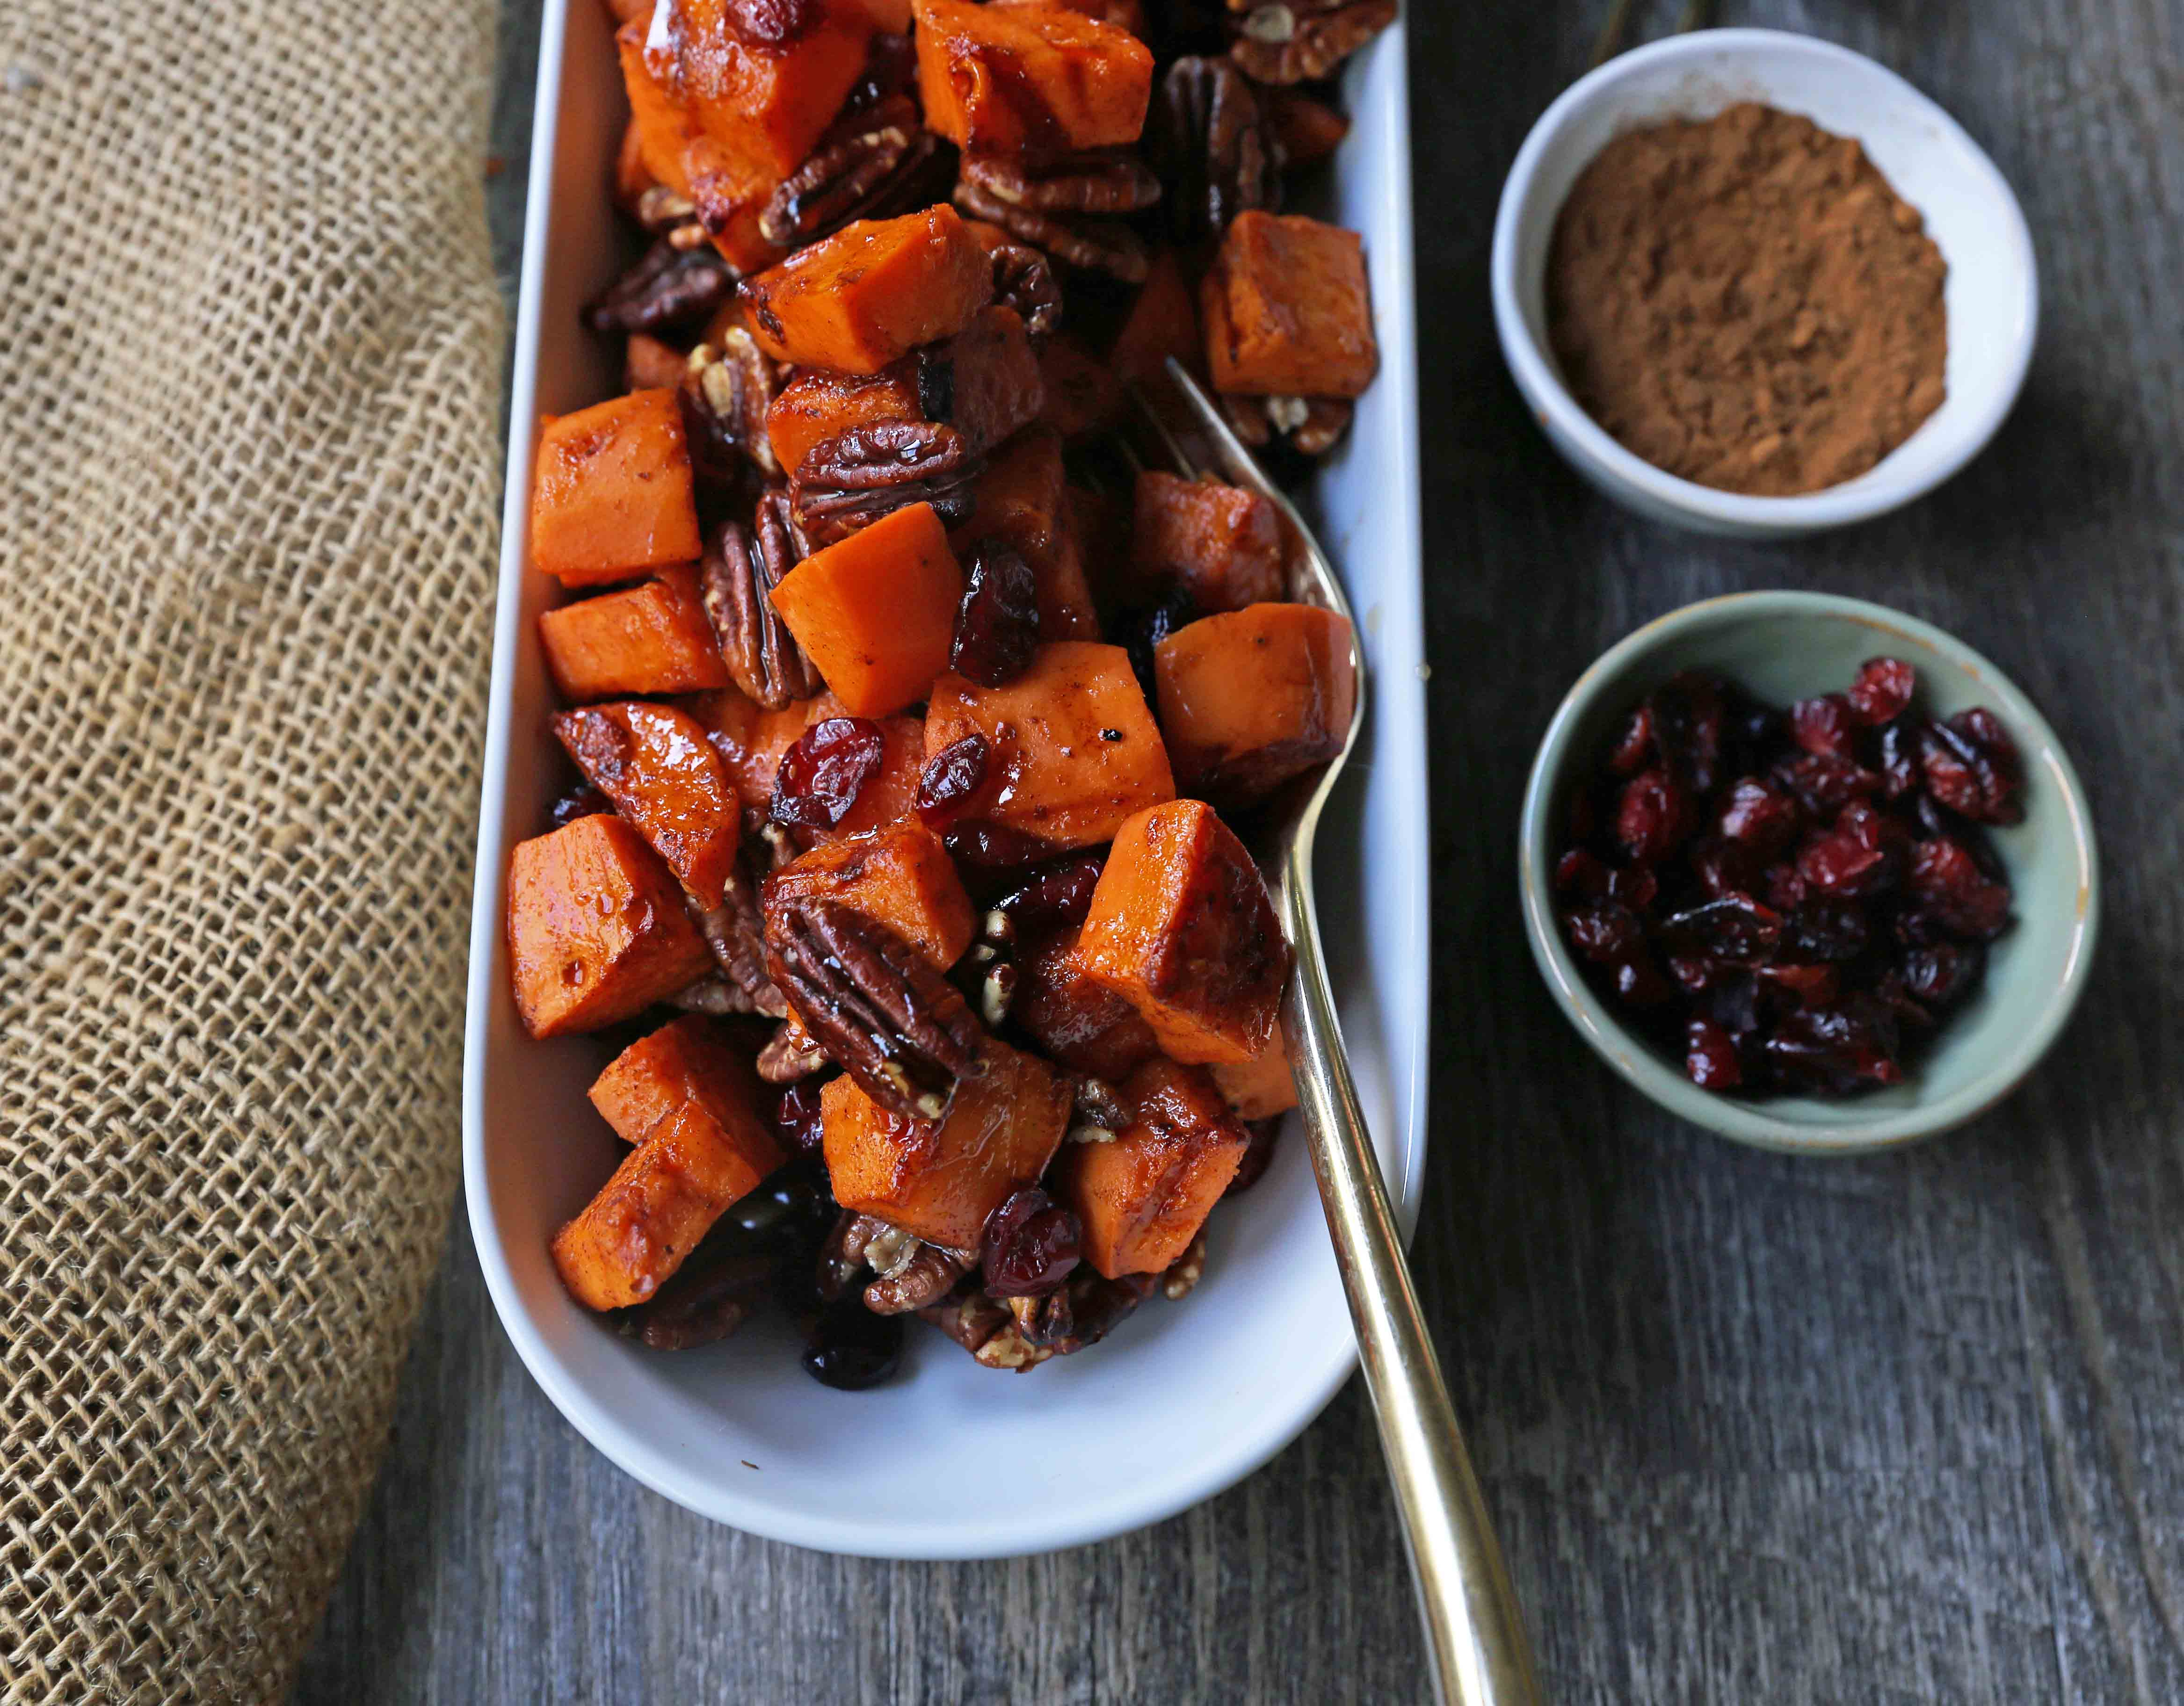 Roasted Sweet Potatoes with Pecans and Cranberries An easy, healthy side dish made with cinnamon roasted sweet potatoes, toasted pecans, and sweet and tart dried cranberries. www.modernhoney.com #sidedish #sweetpotatoes #sweetpotatoespecan #roastedsweetpotatoes